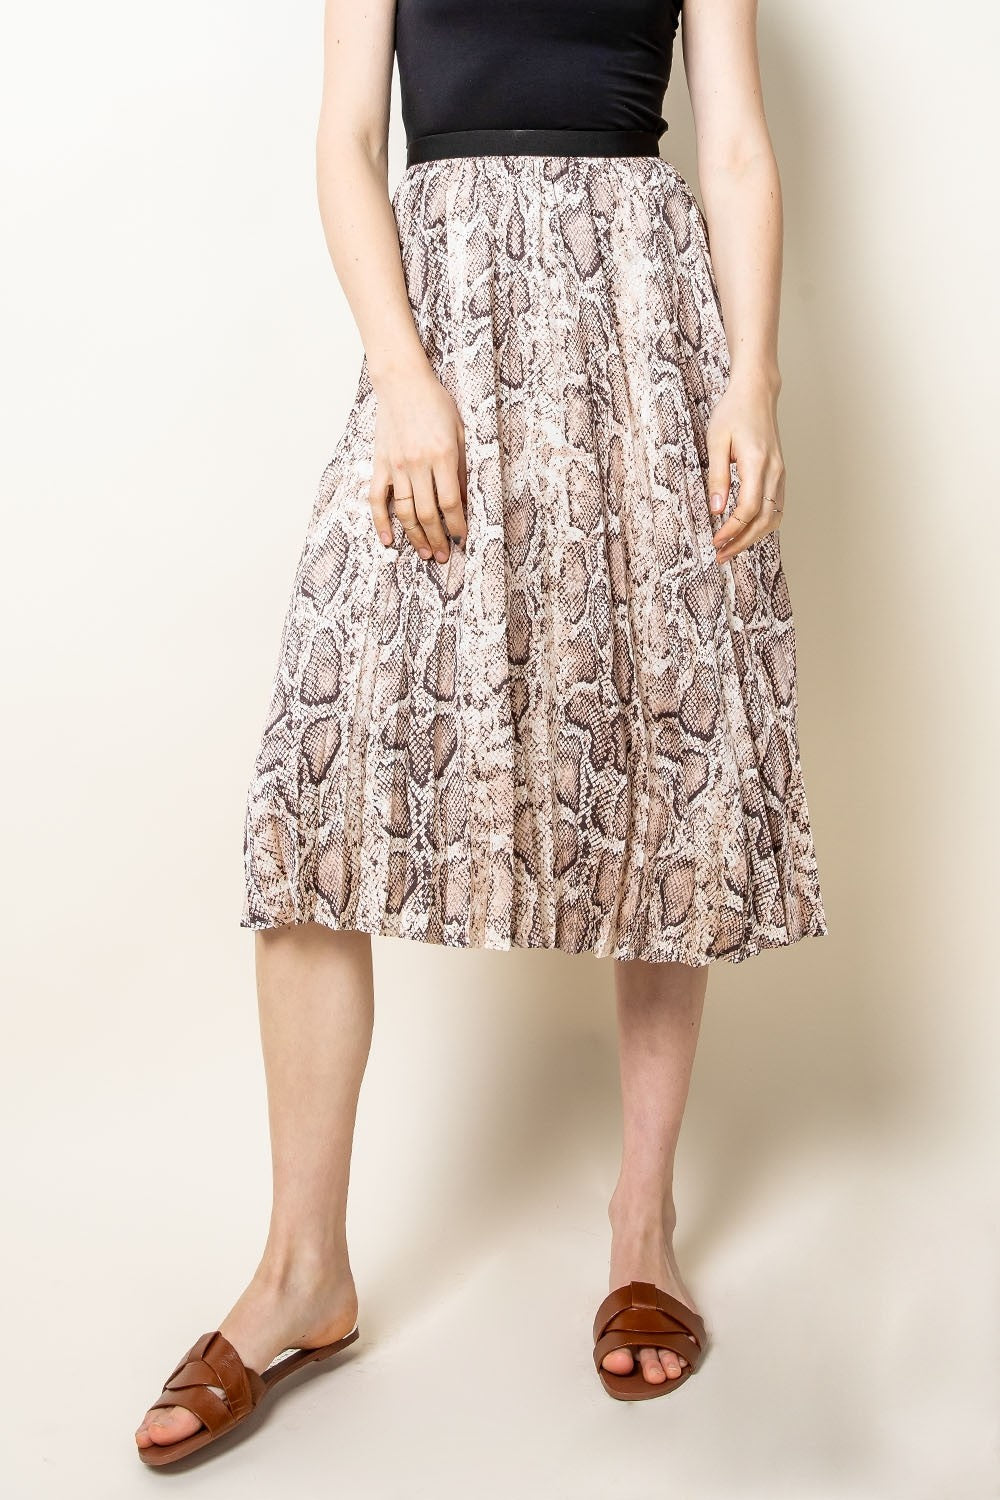 Snake Skin Pleated Midi Skirt